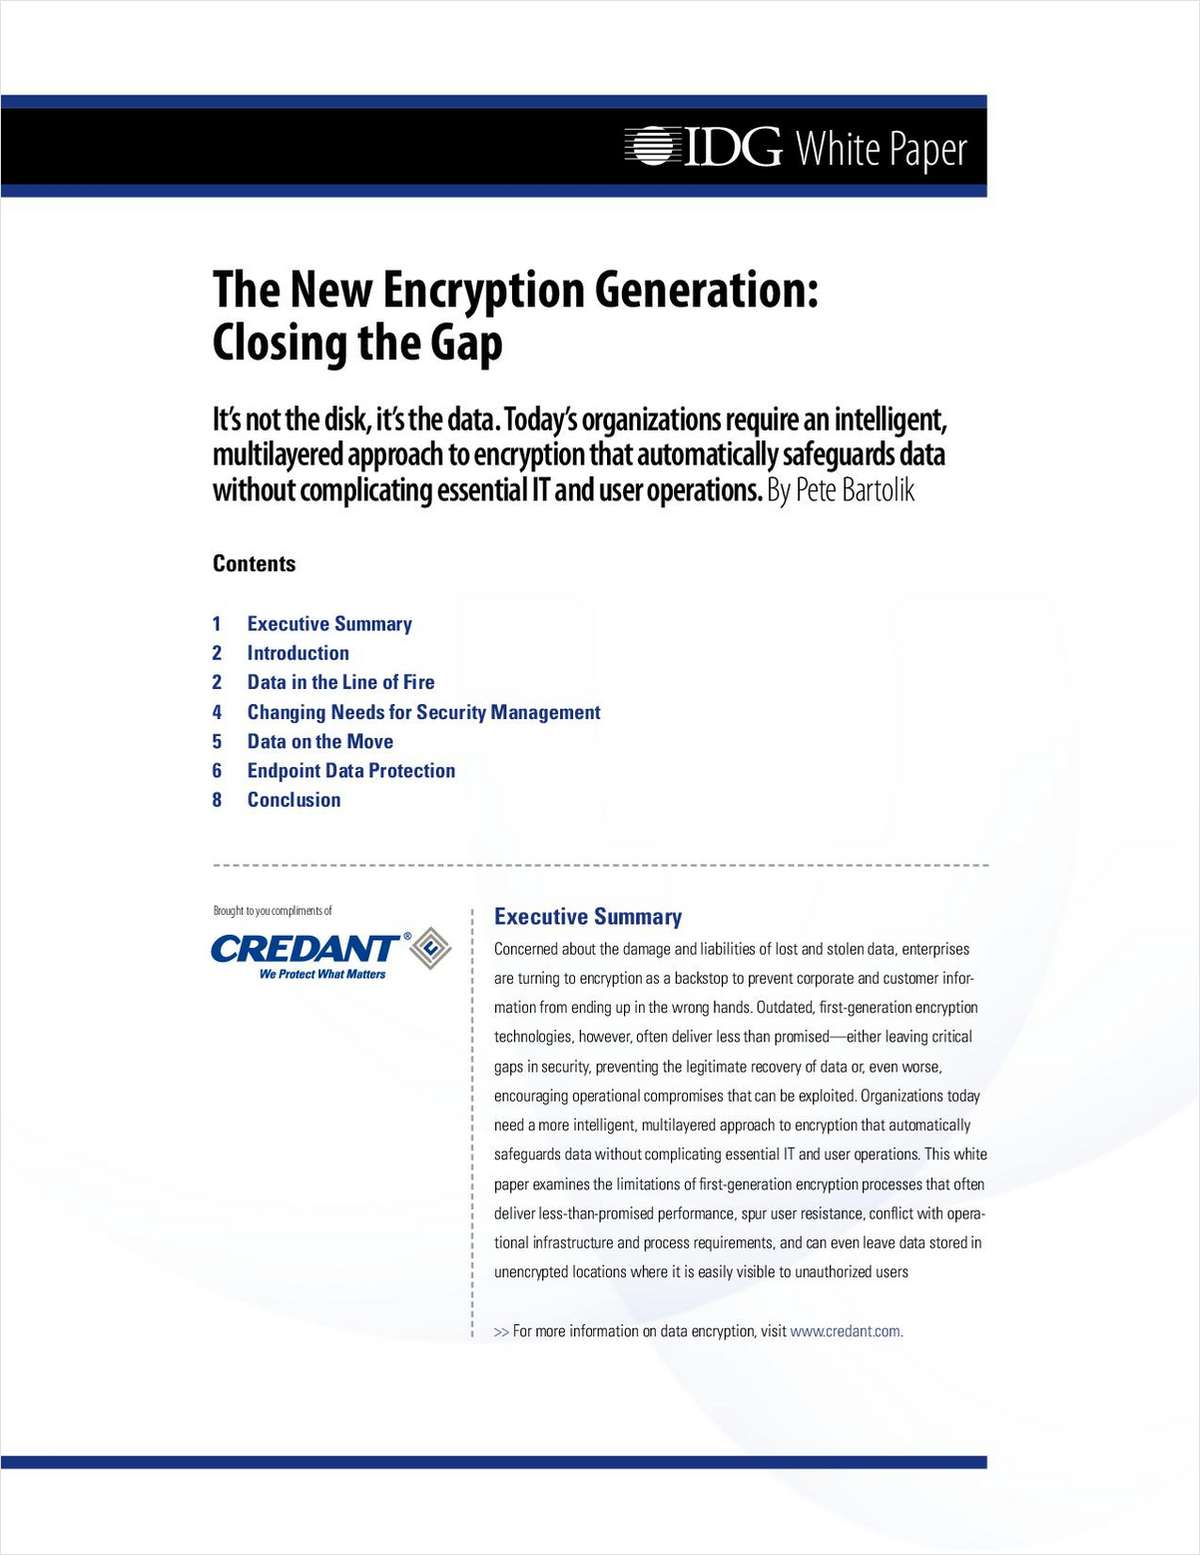 The New Encryption Generation: Closing the Gap